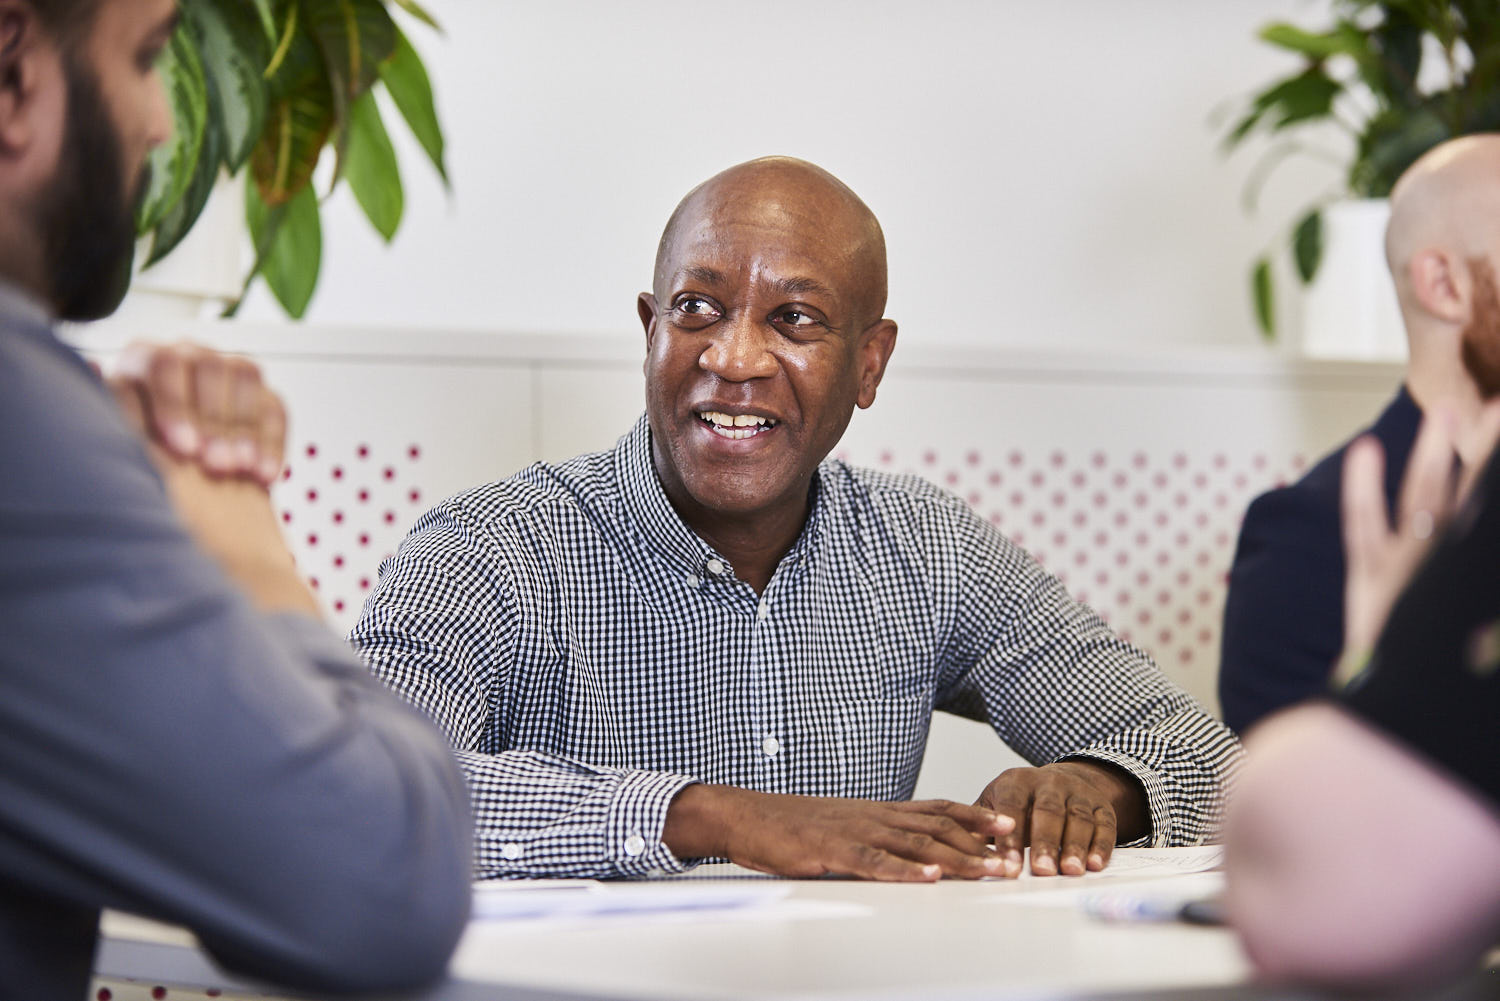 Man smiling in a bright meeting room in the middle of a team meeting